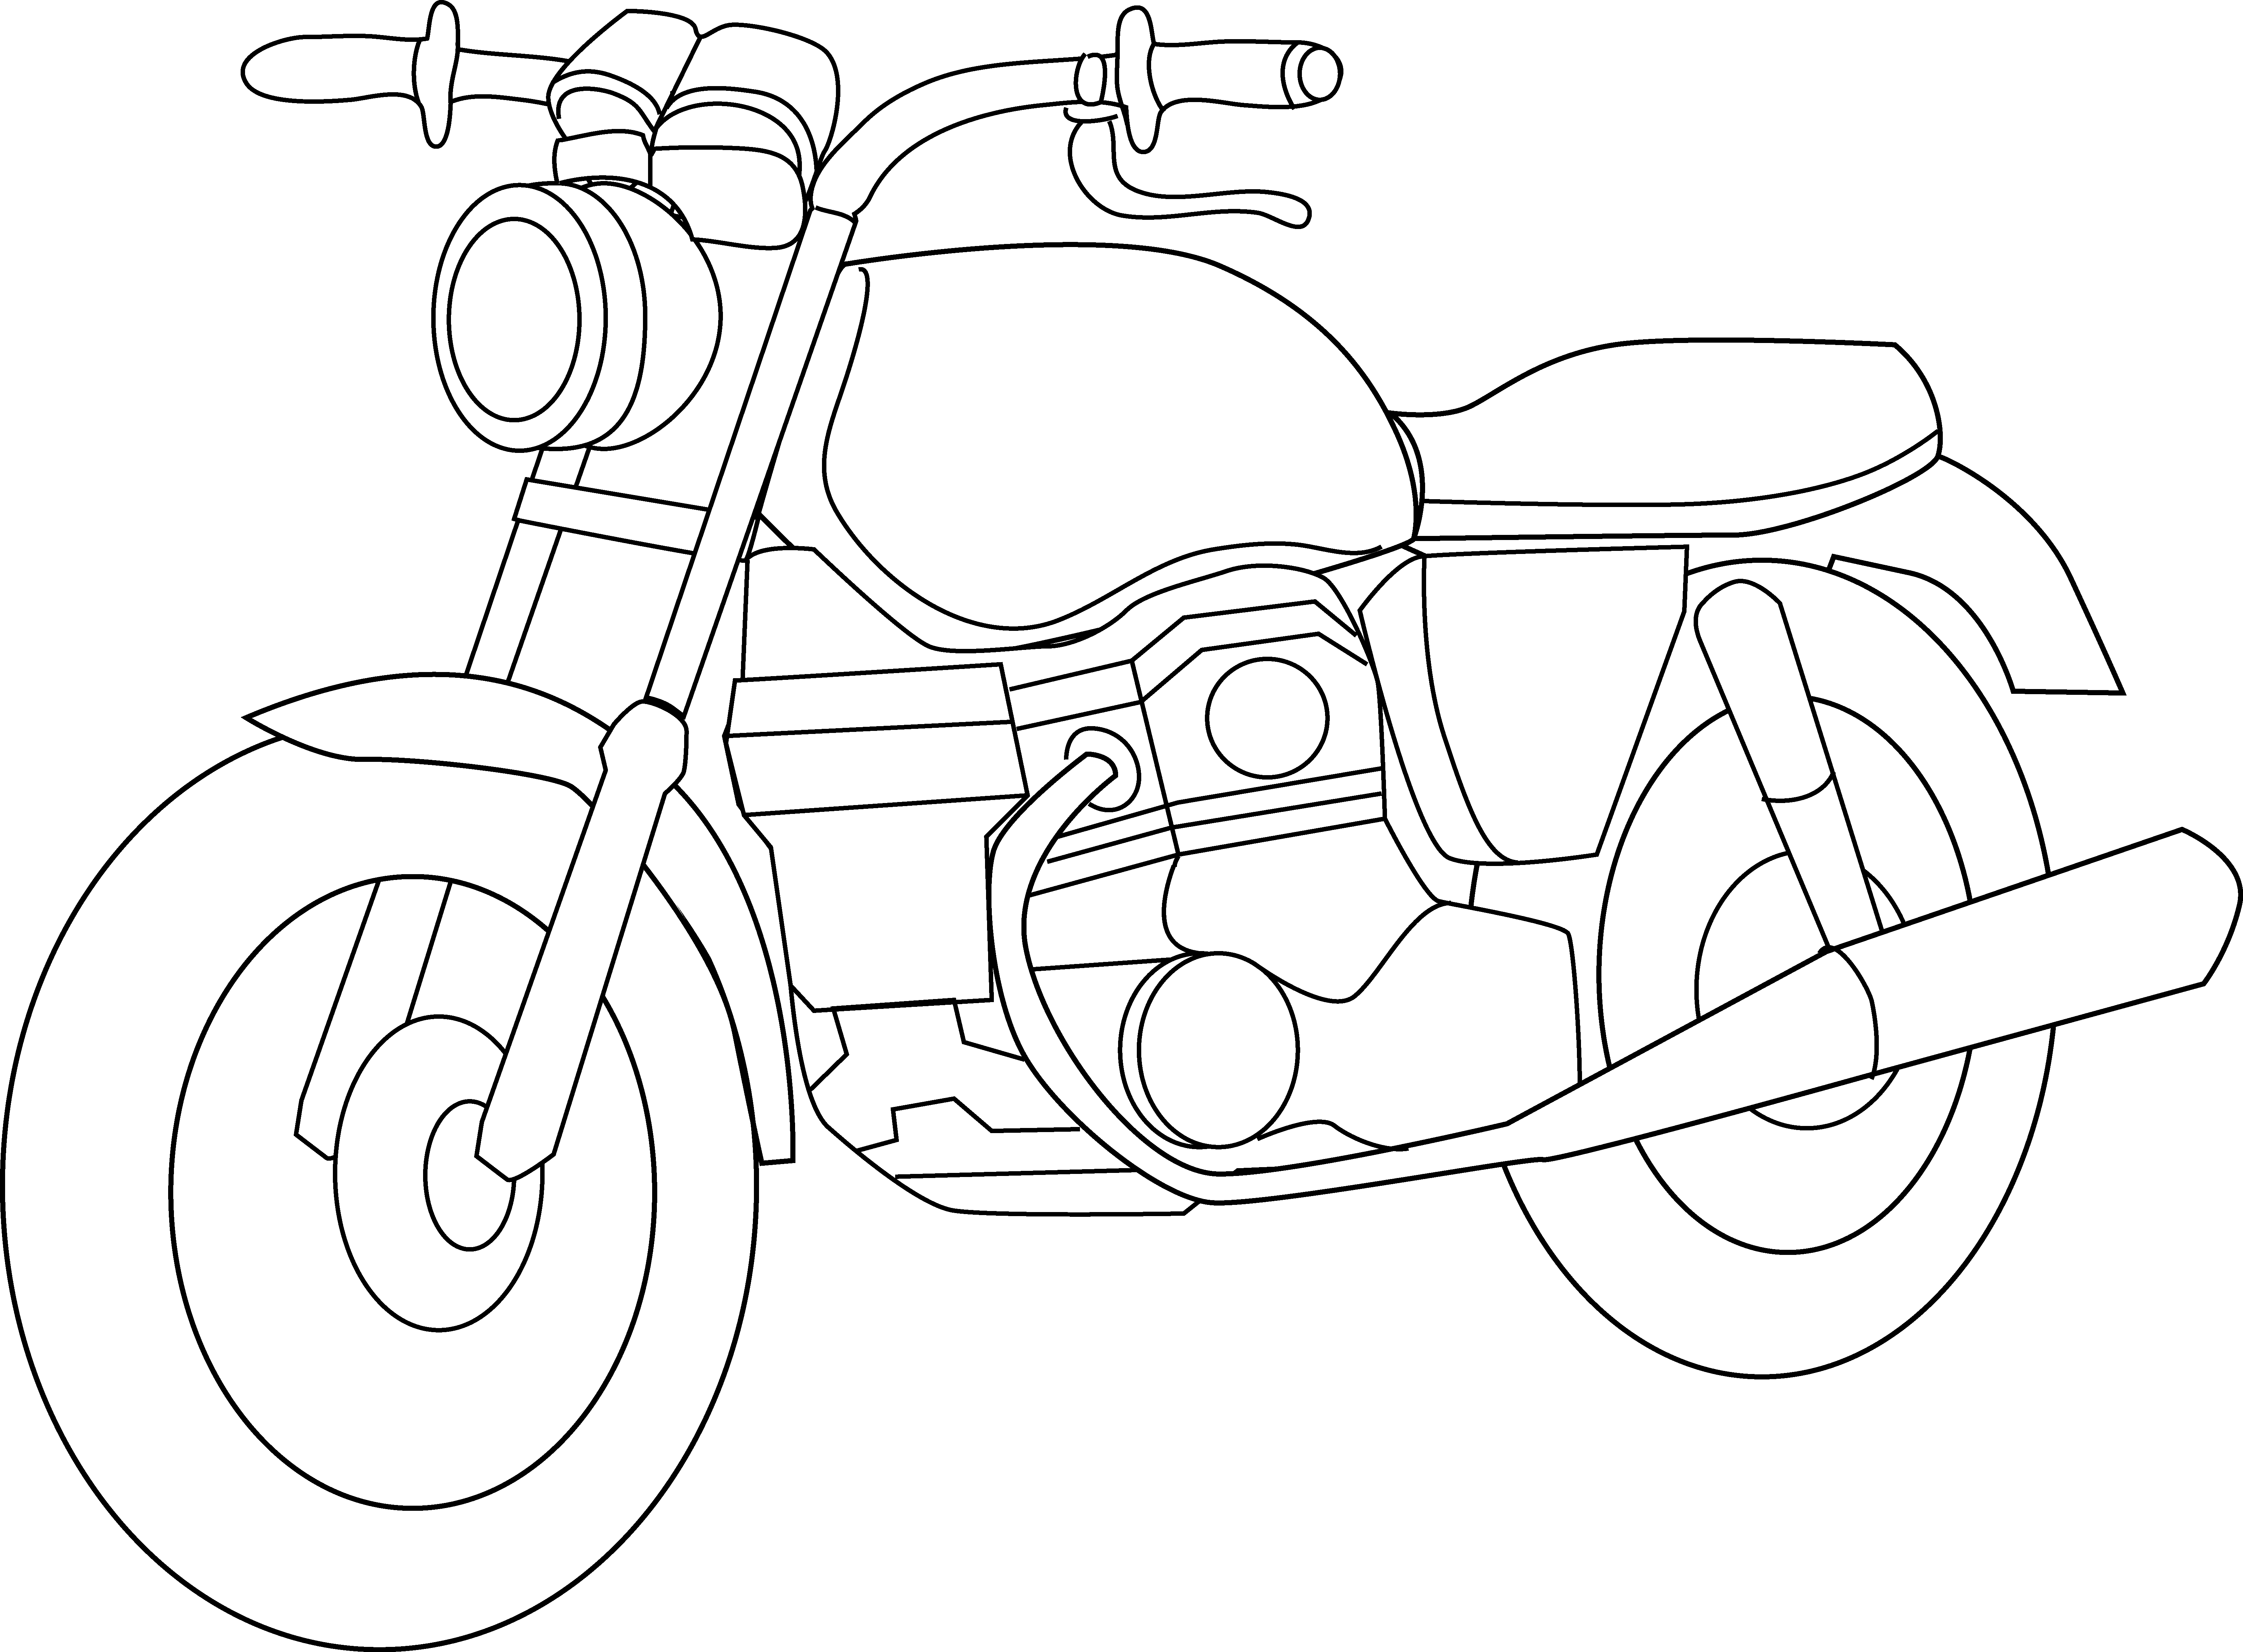 White motorcycle. Clipart black and panda